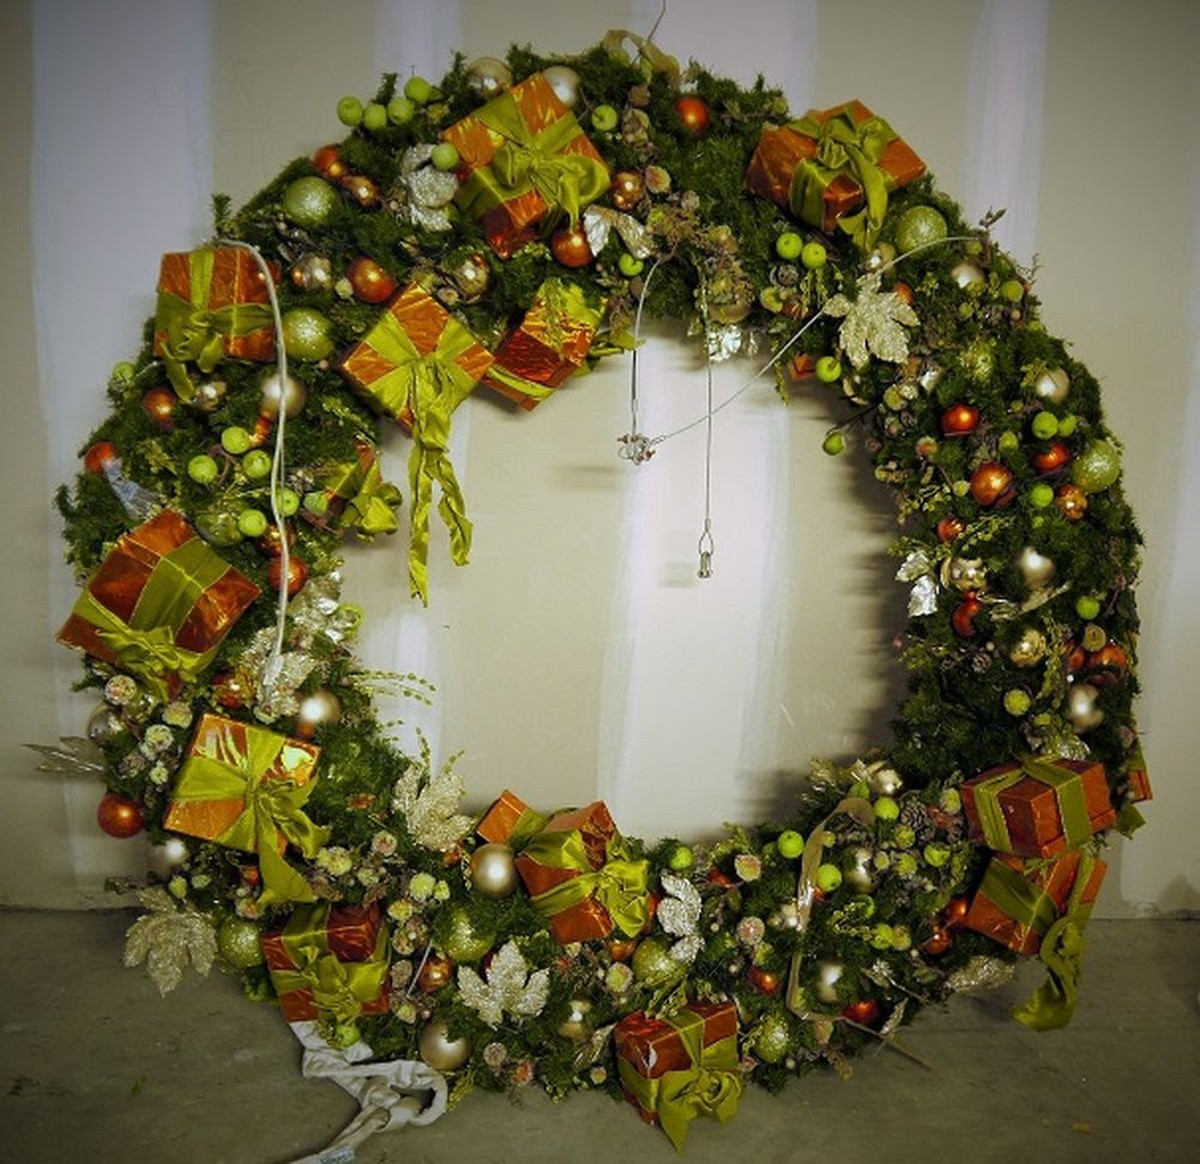 Christmas Decorations For Commercial Use Uk: Secondhand Catering Equipment